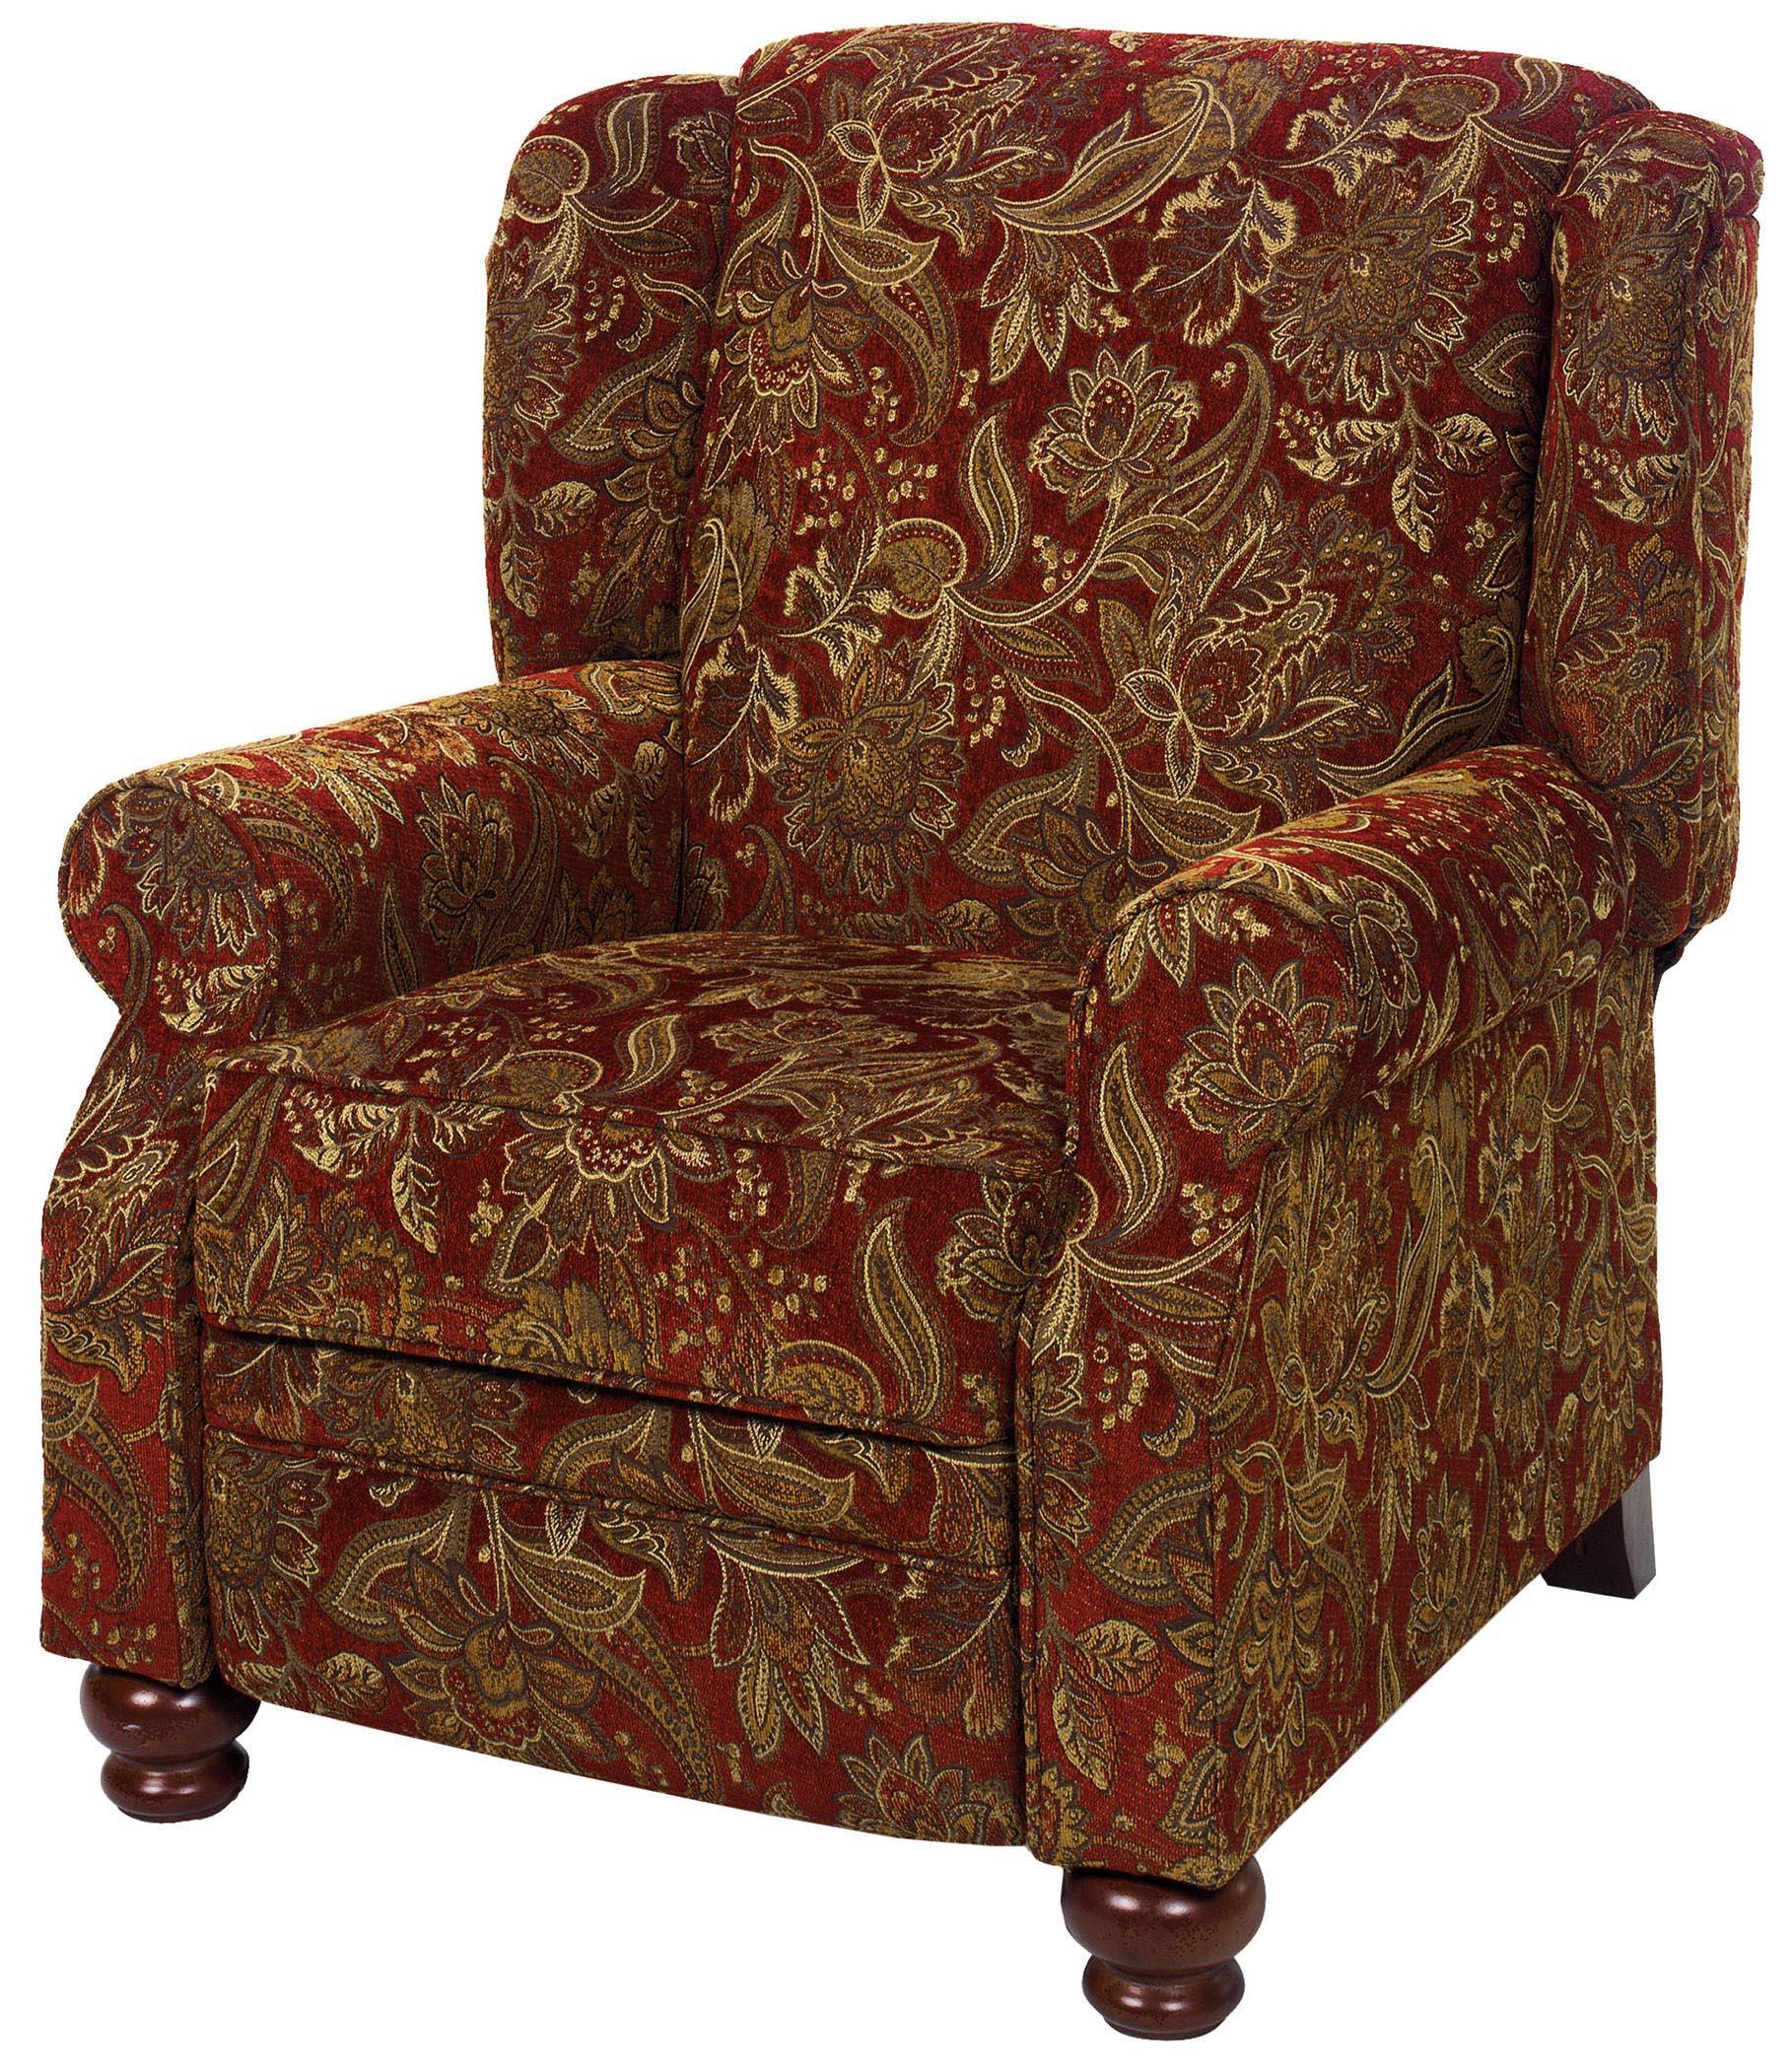 Jackson Furniture Belmont High Leg Recliner - Item Number: 4347-11